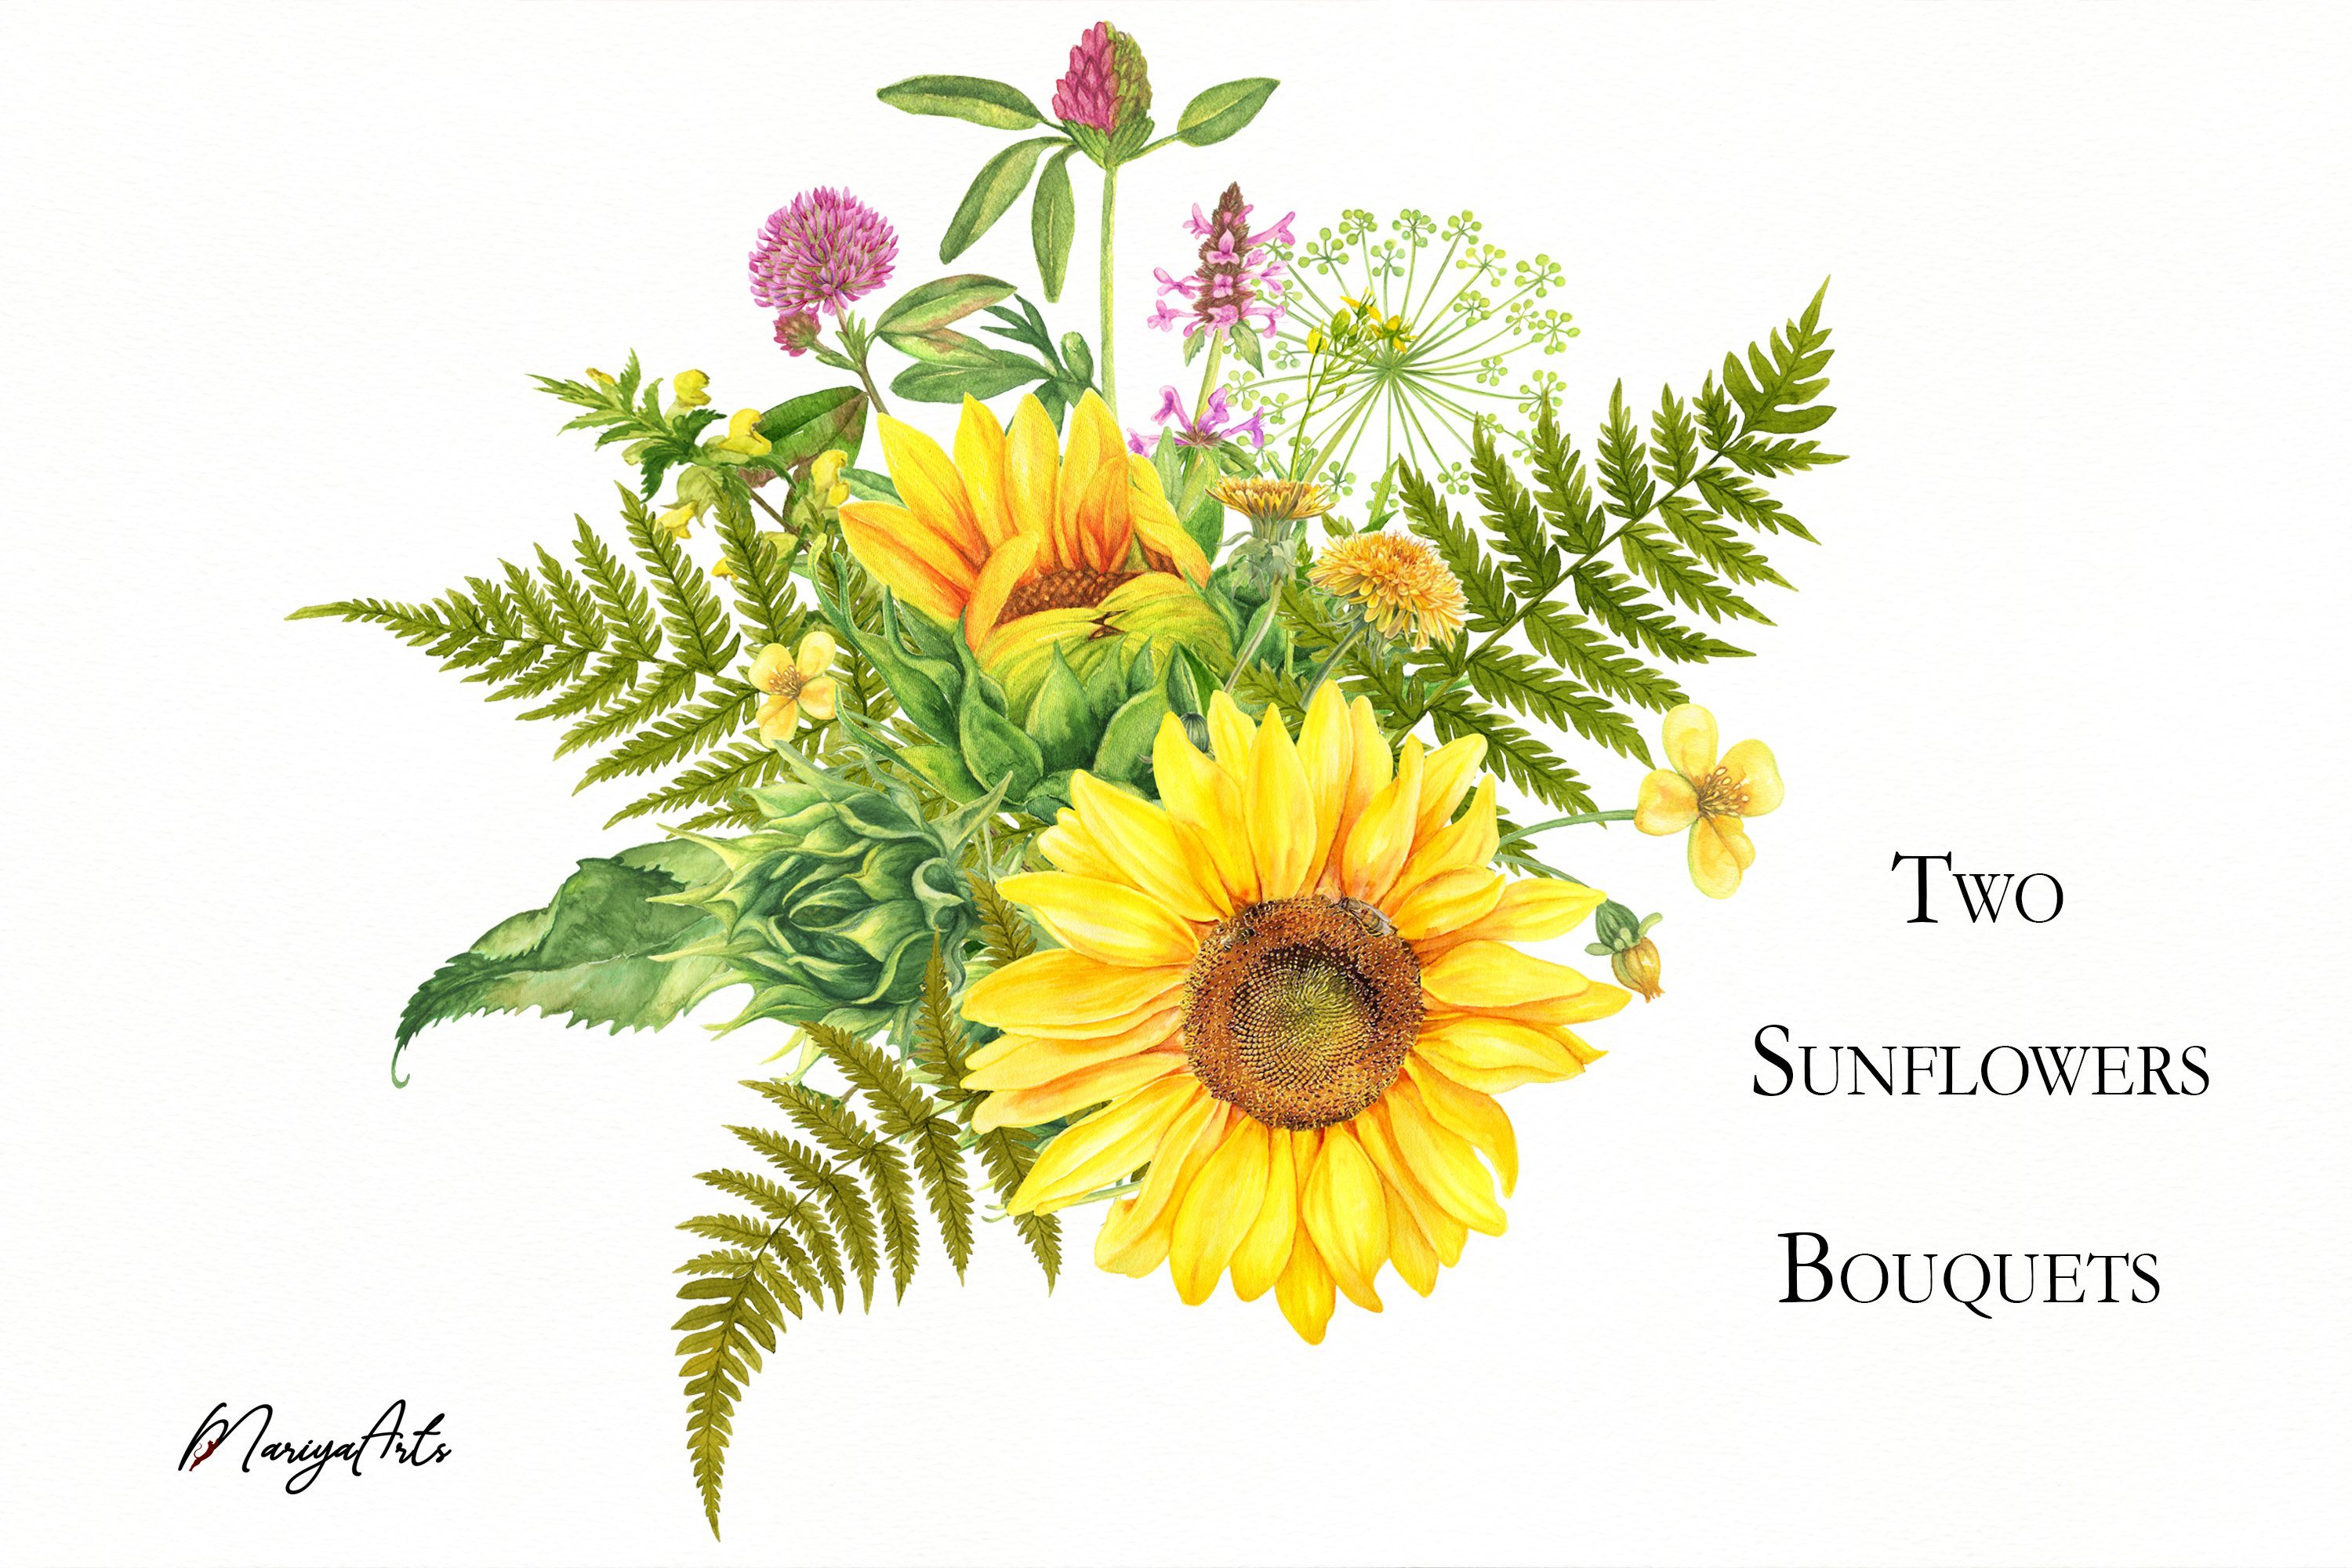 Two Sunflowers Bouquets, Meadow Flowers, Clipart ...